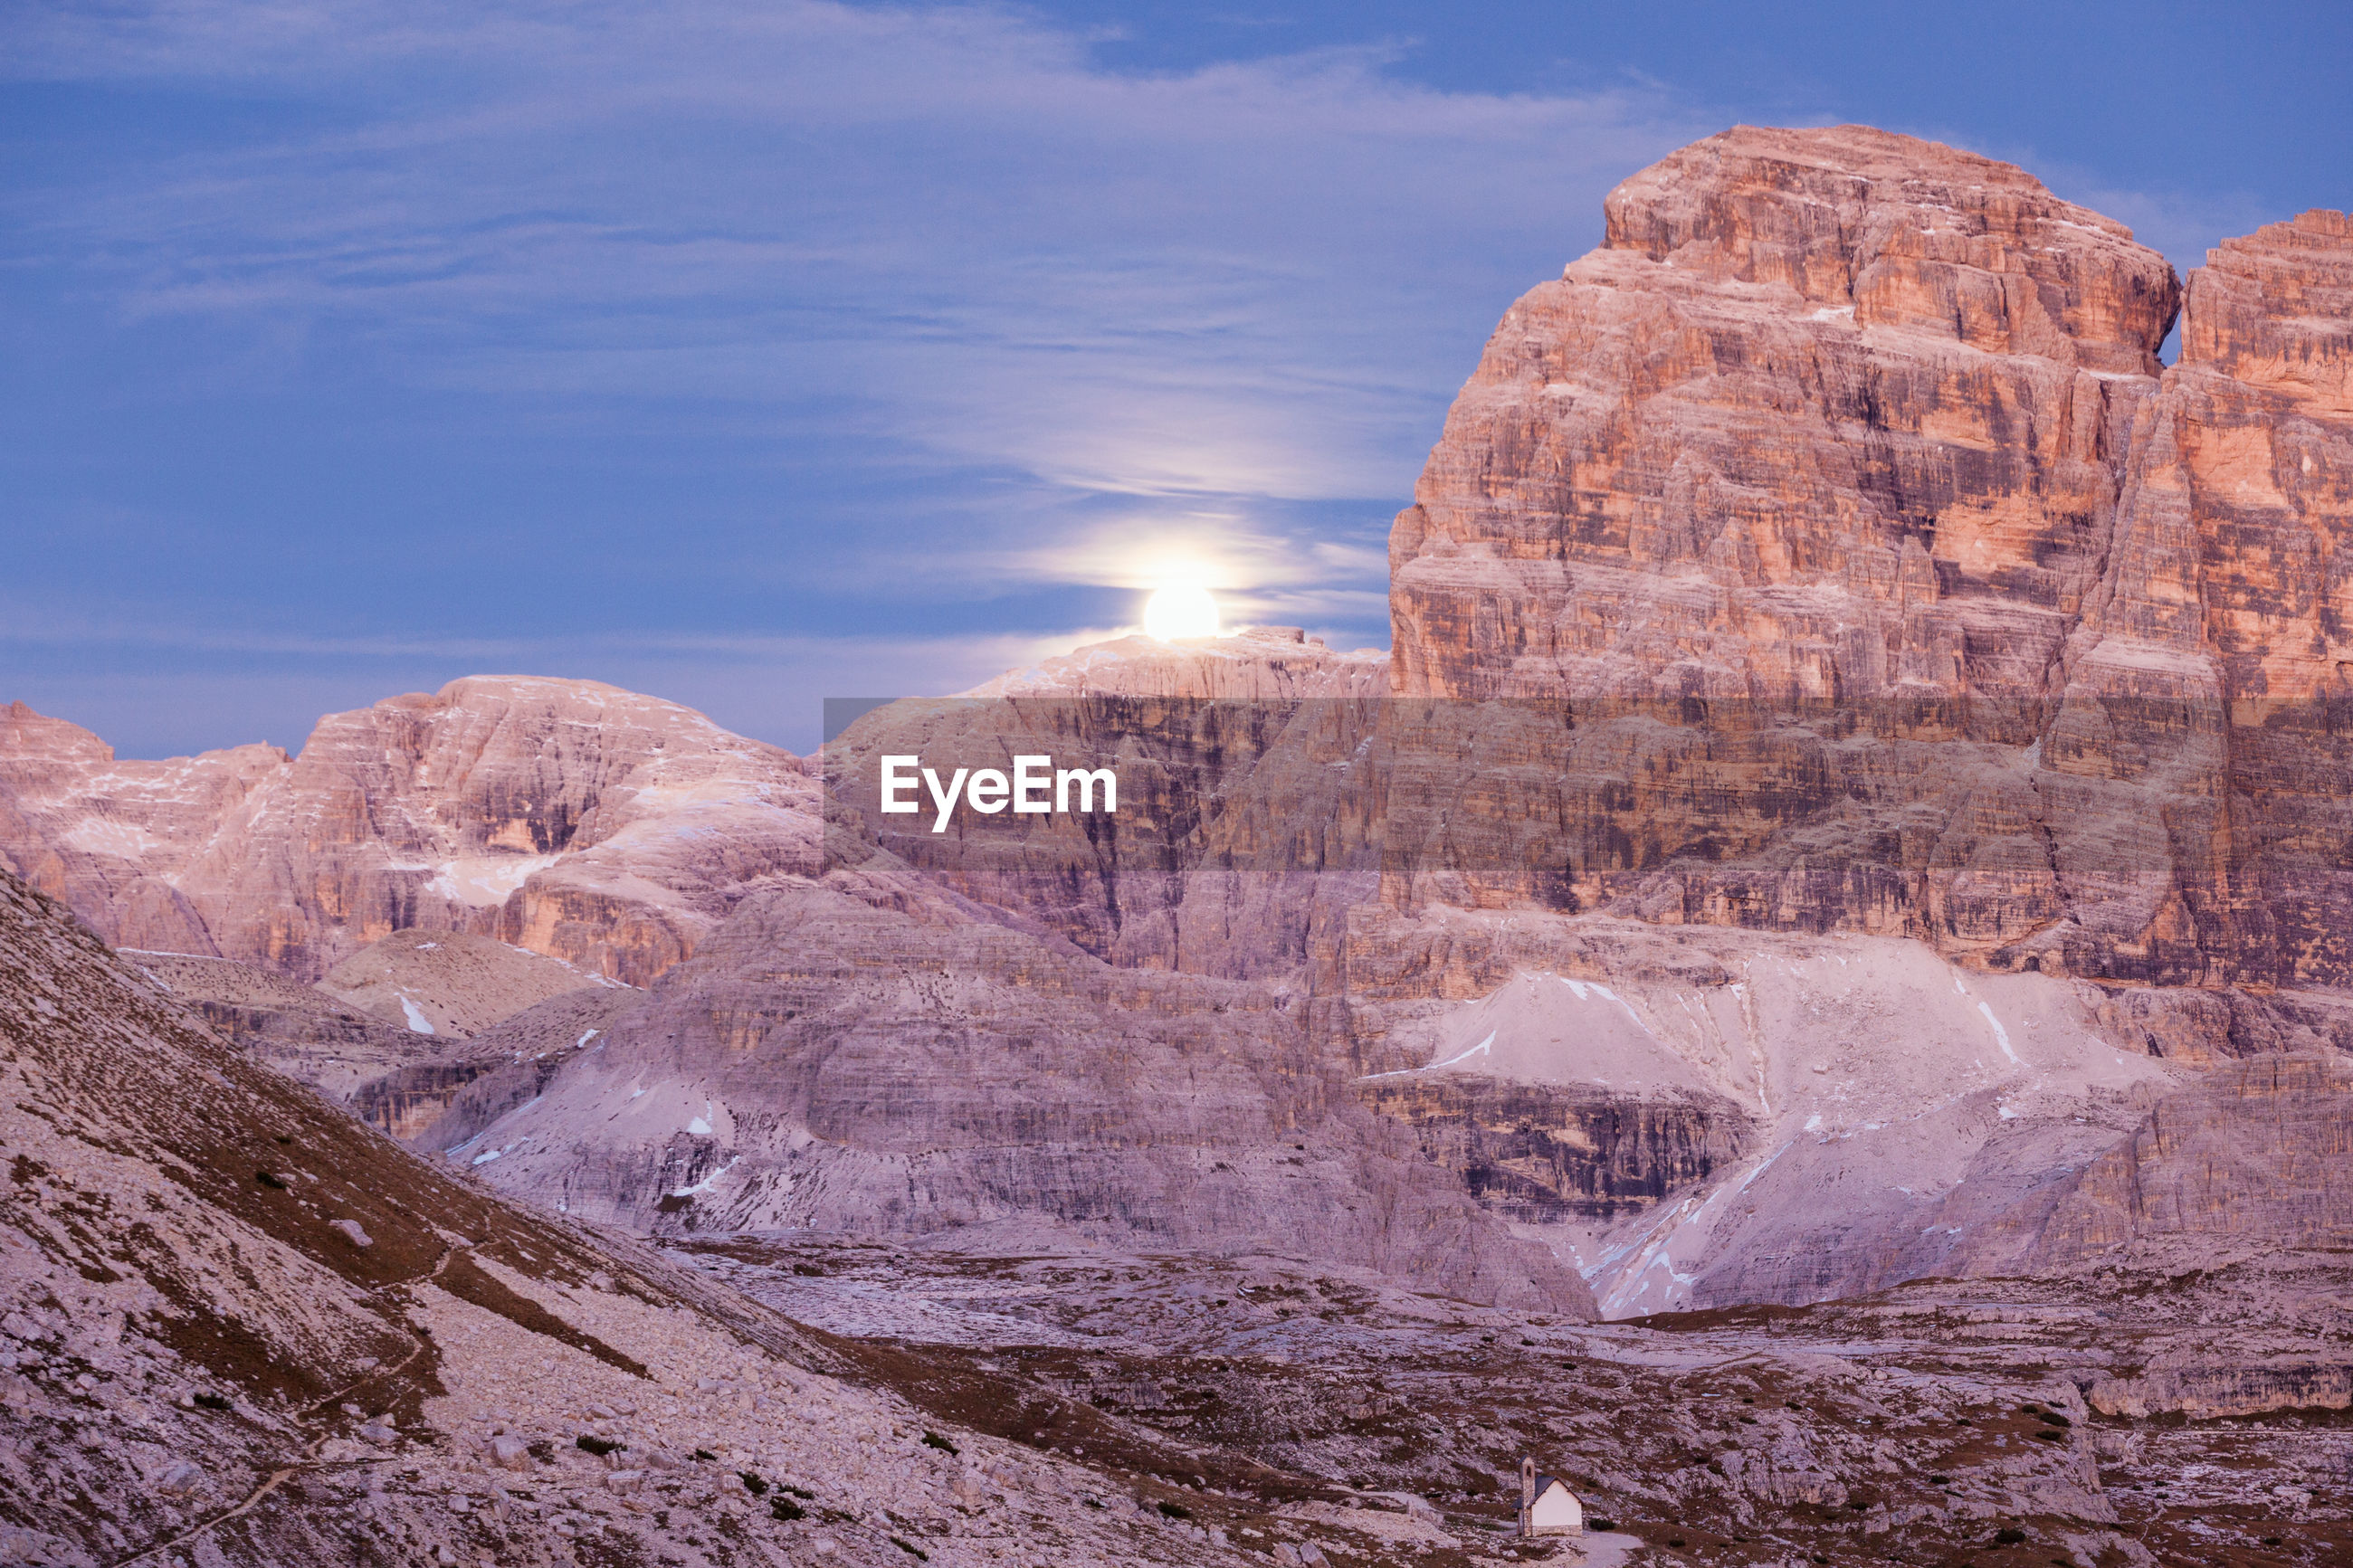 Moonrise over the mountains at sunset